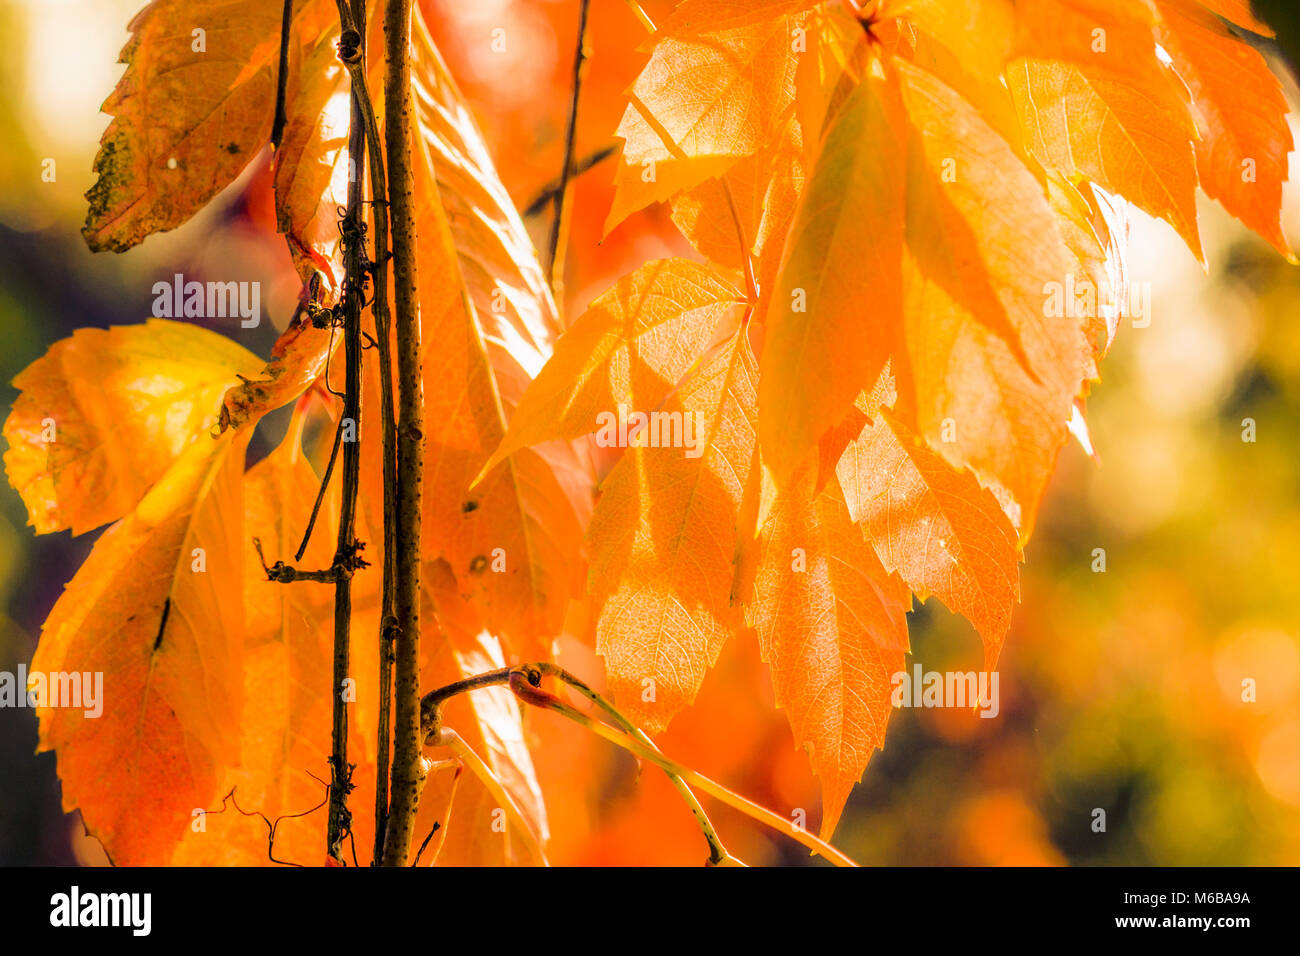 Sunny background with golden autumn leaves in Novembe - Stock Image